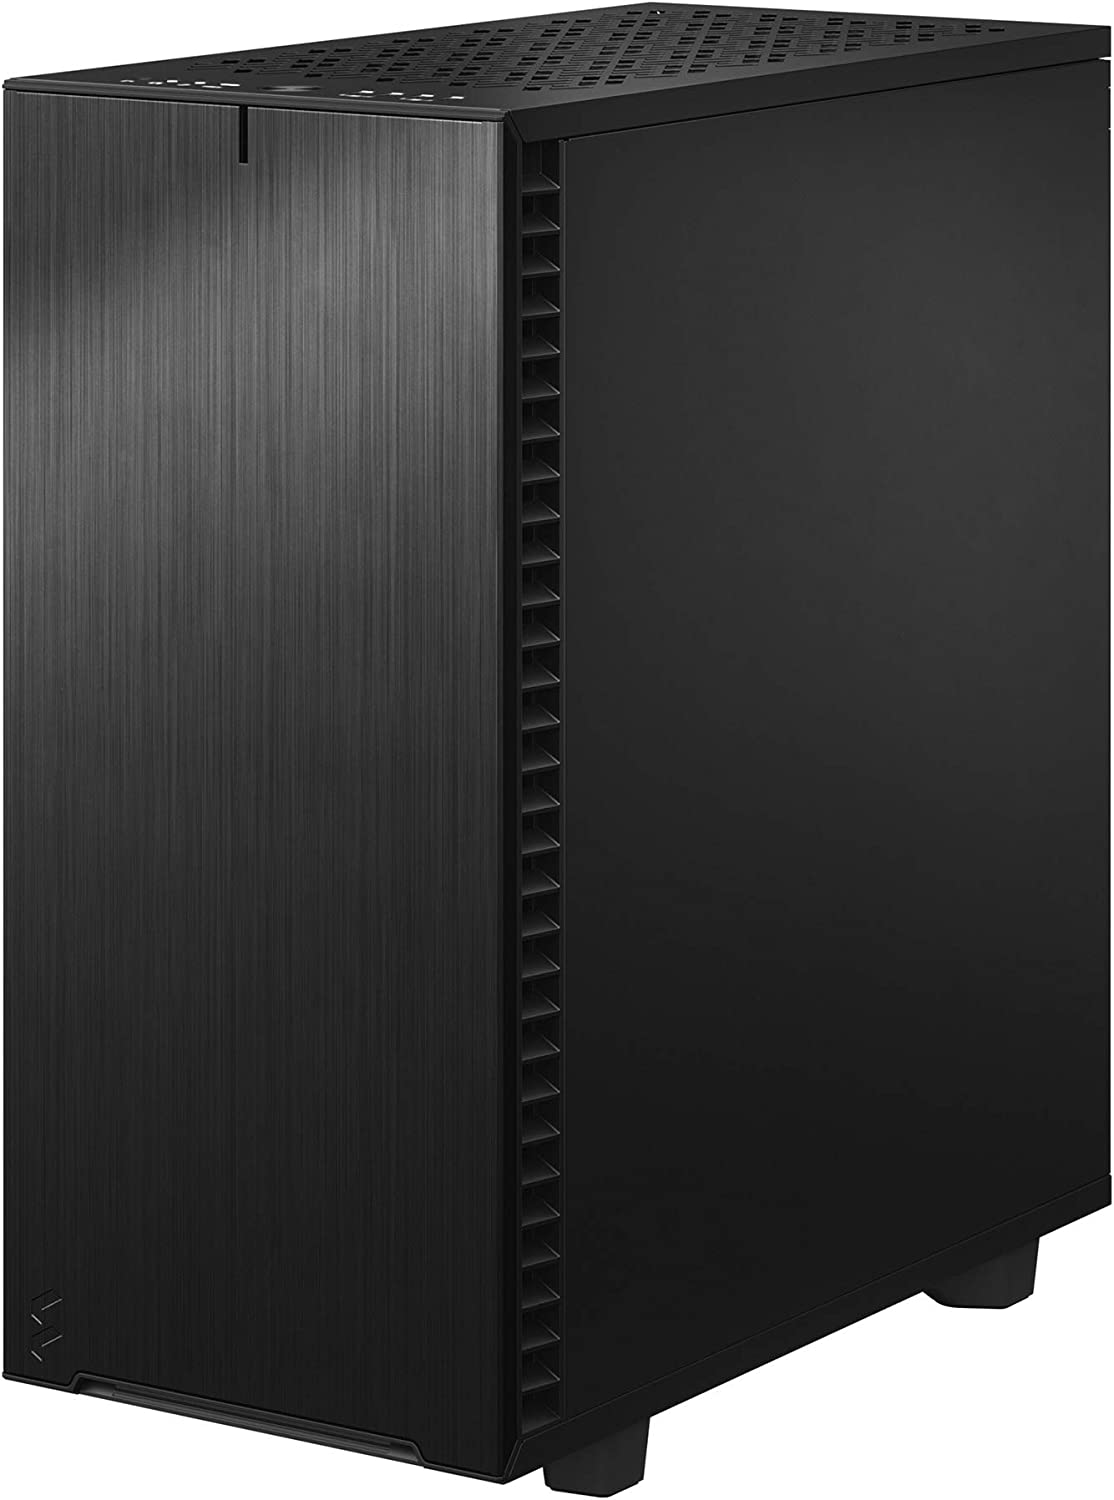 Fractal Design Define 7 Compact Black Brushed Aluminum//Steel ATX Compact Silent Dark Tinted Tempered Glass Window Mid Tower Computer Case